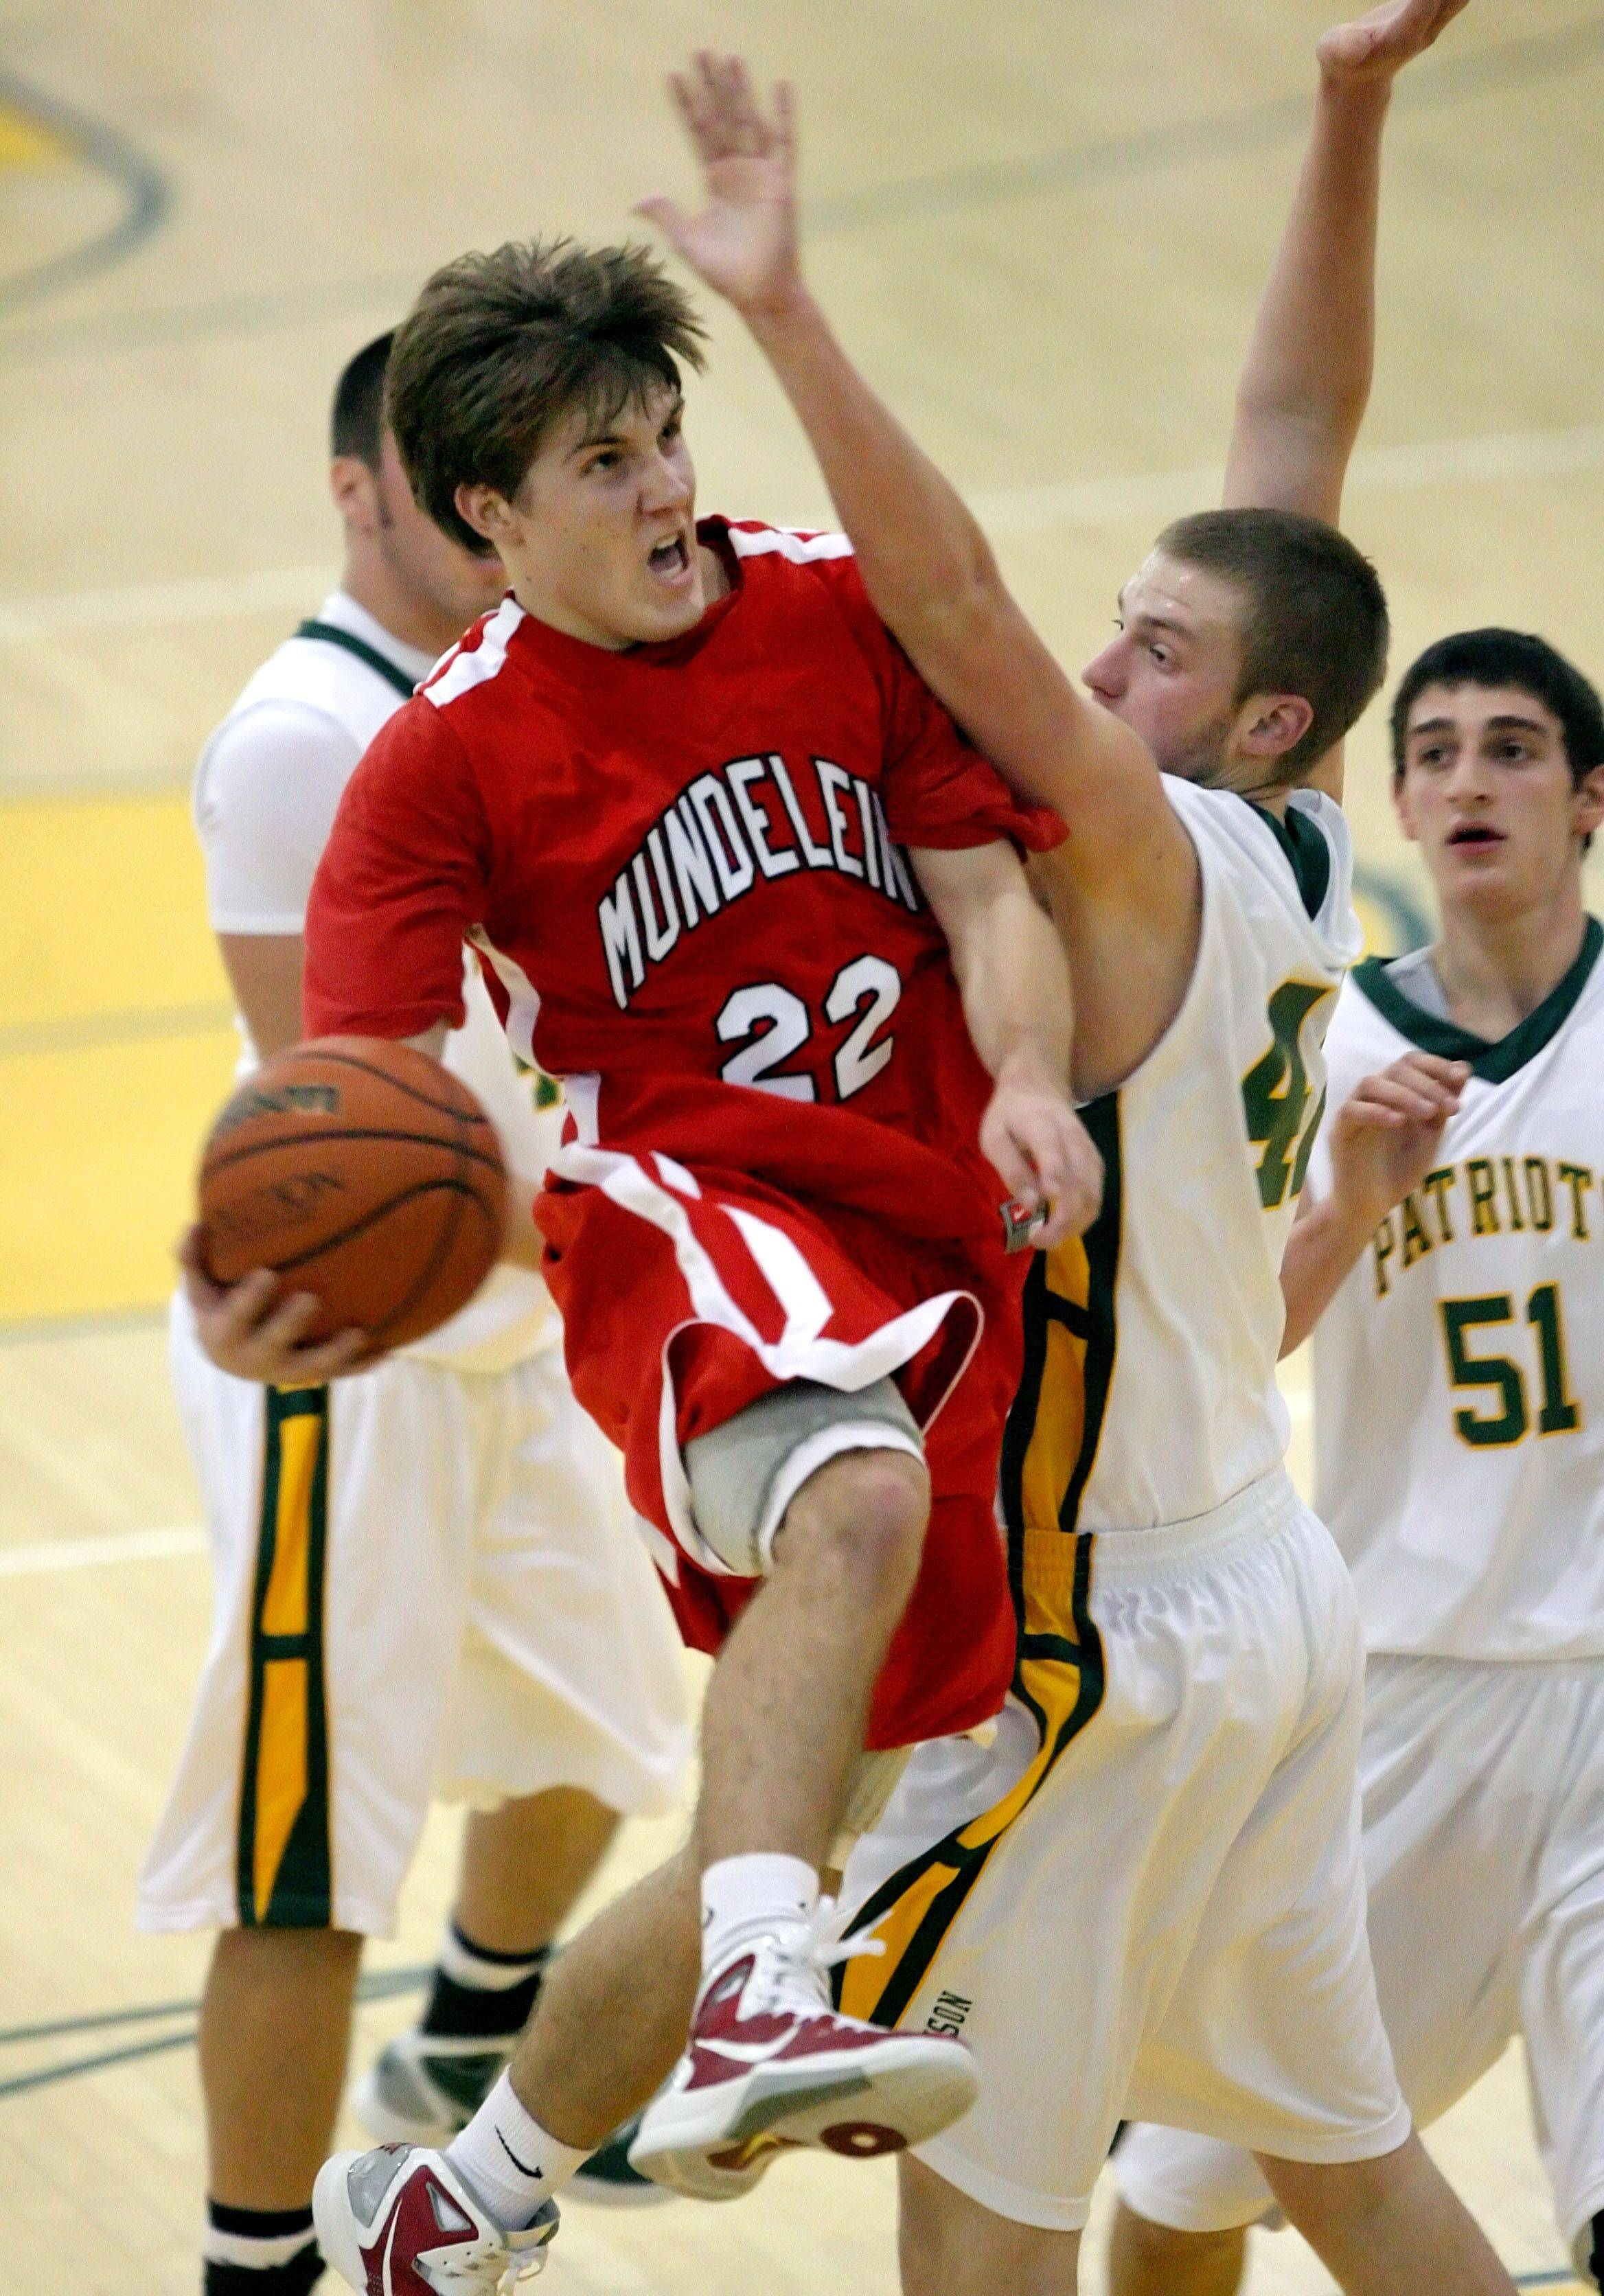 Mundelein's Robert Knar, left, drives past Stevenson's Brian Carlson during their game Friday night at Stevenson High School.